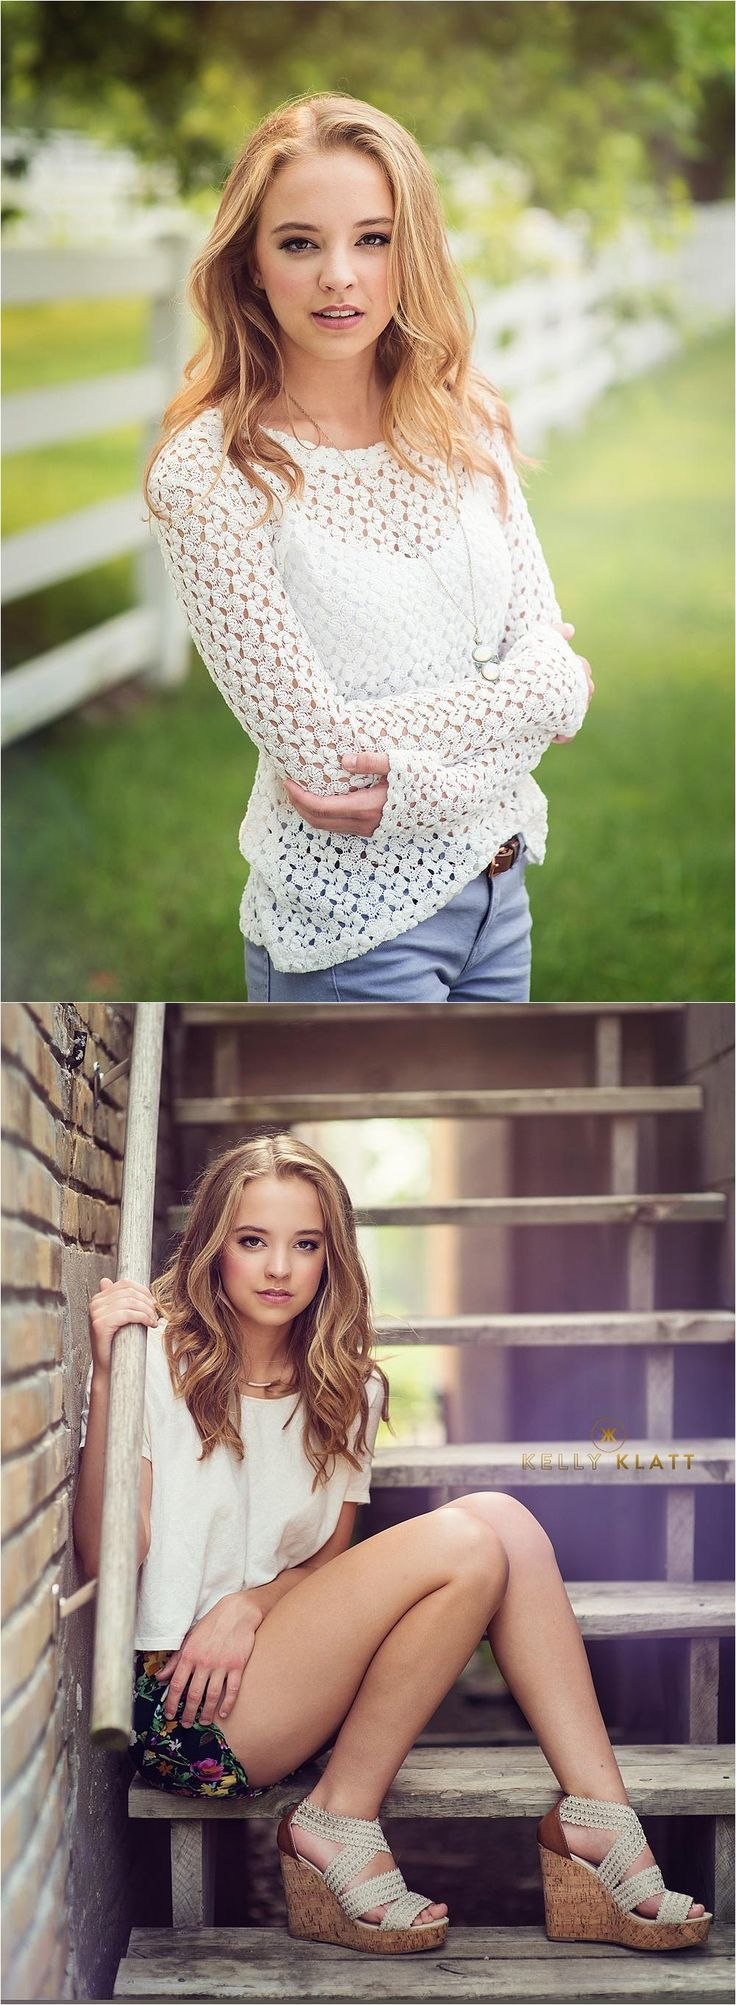 Pin by Amy Bayerl on Brooke B. Senior Pic Ideas